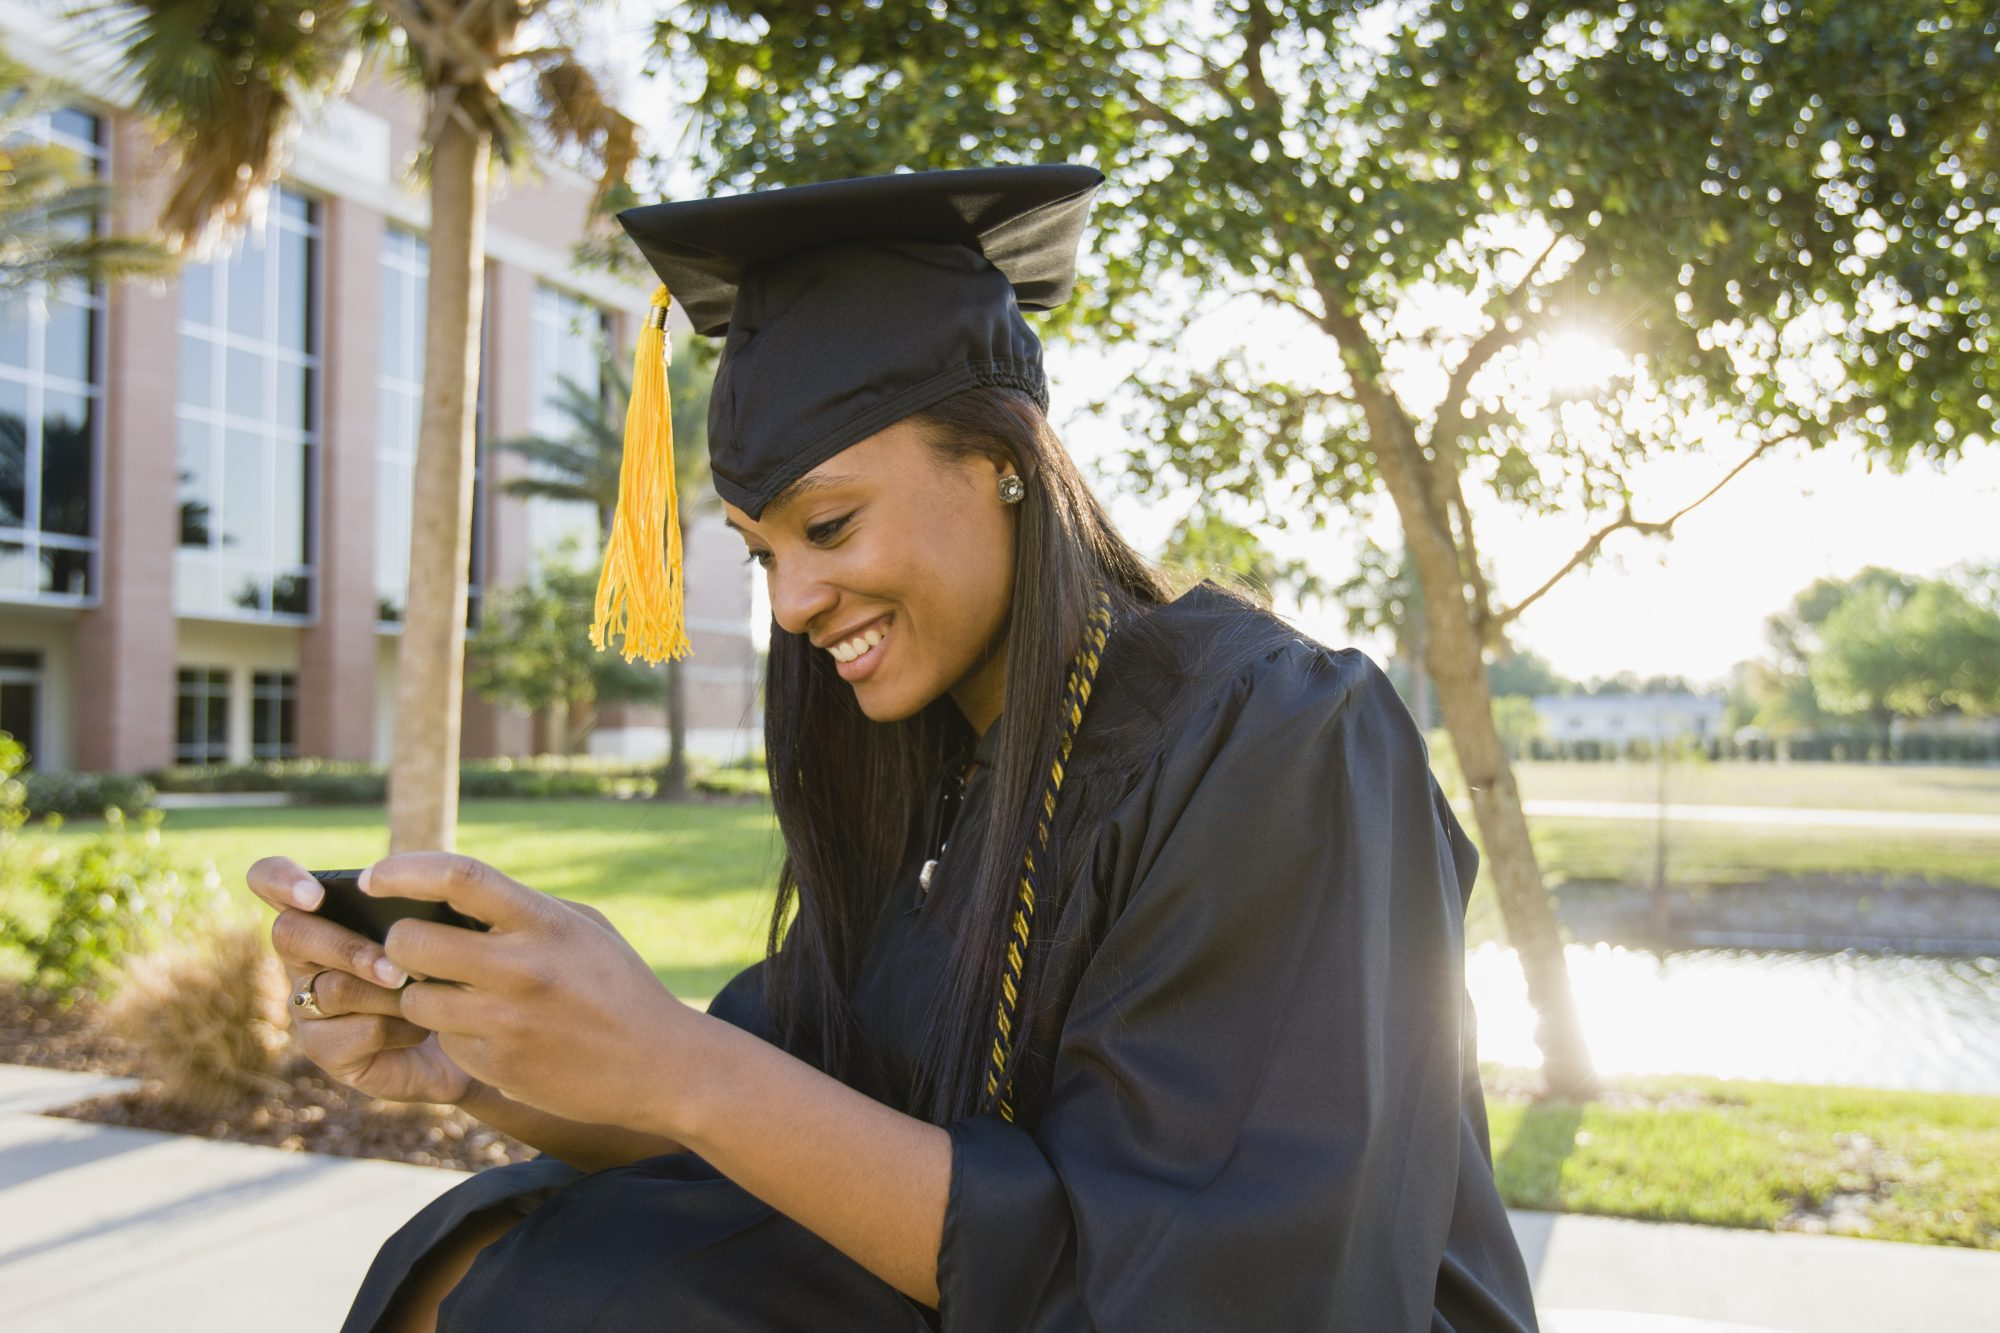 college graduate texting on a smart phone